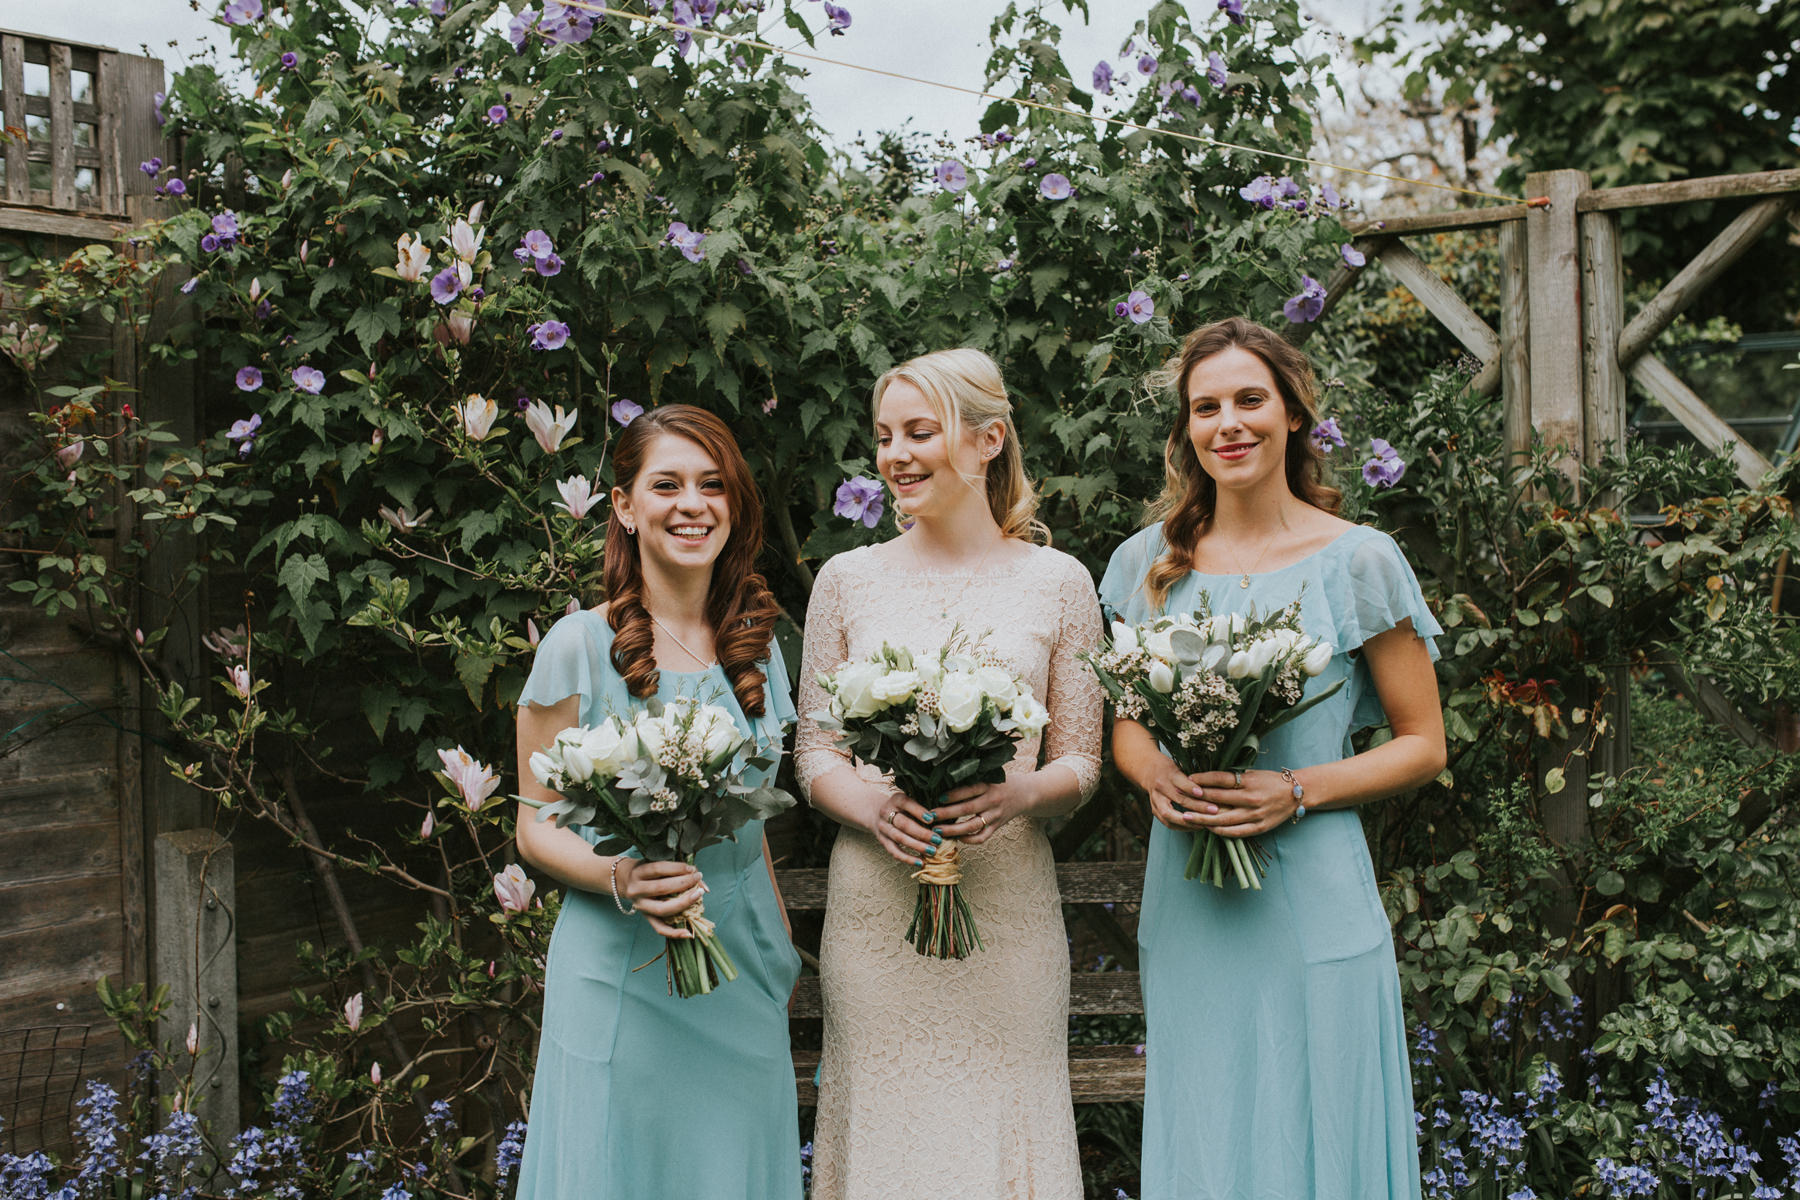 LD-90-bride-blush-lace-dress-bridesmaids-blue-dress-london-alternative-wedding-photographer.jpg